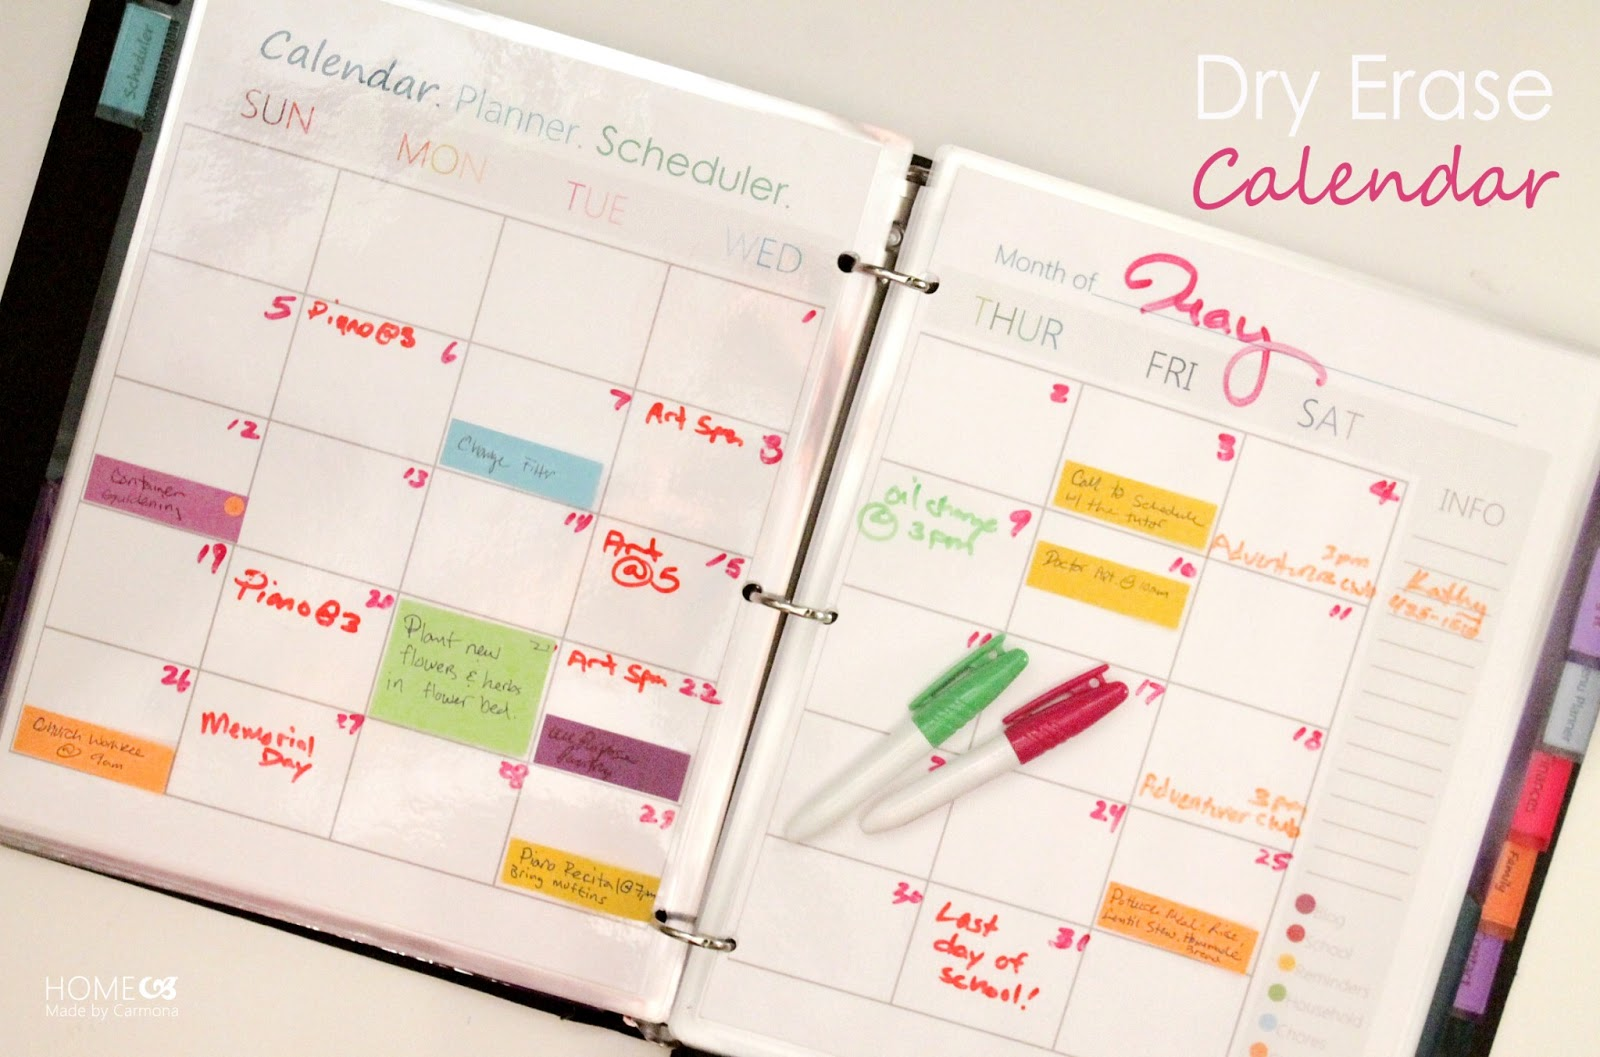 Calendar Planner Scheduling : Dry erase calendar home made by carmona